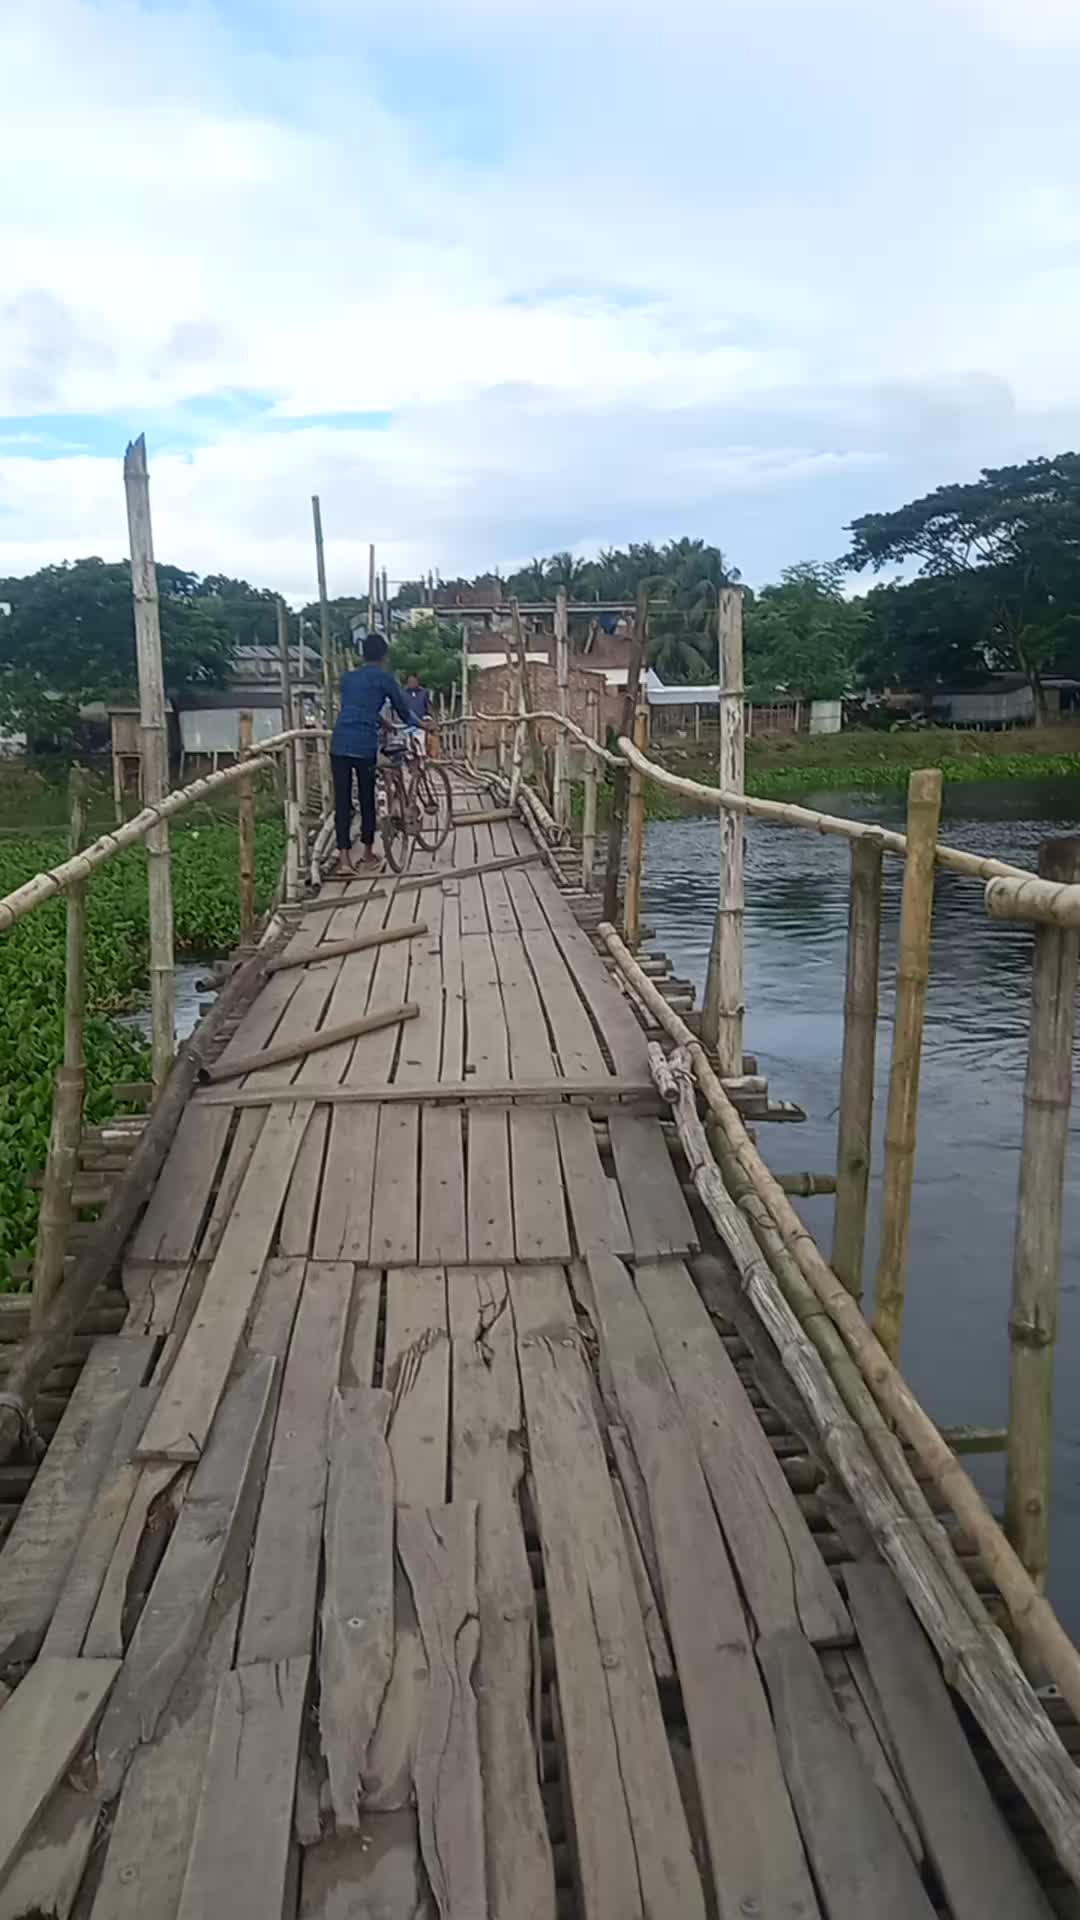 I showed you a view of a beautiful bridge on the bank of a river. I showed you a scene where some people built a small bridge and made a place to walk in the middle of the river.